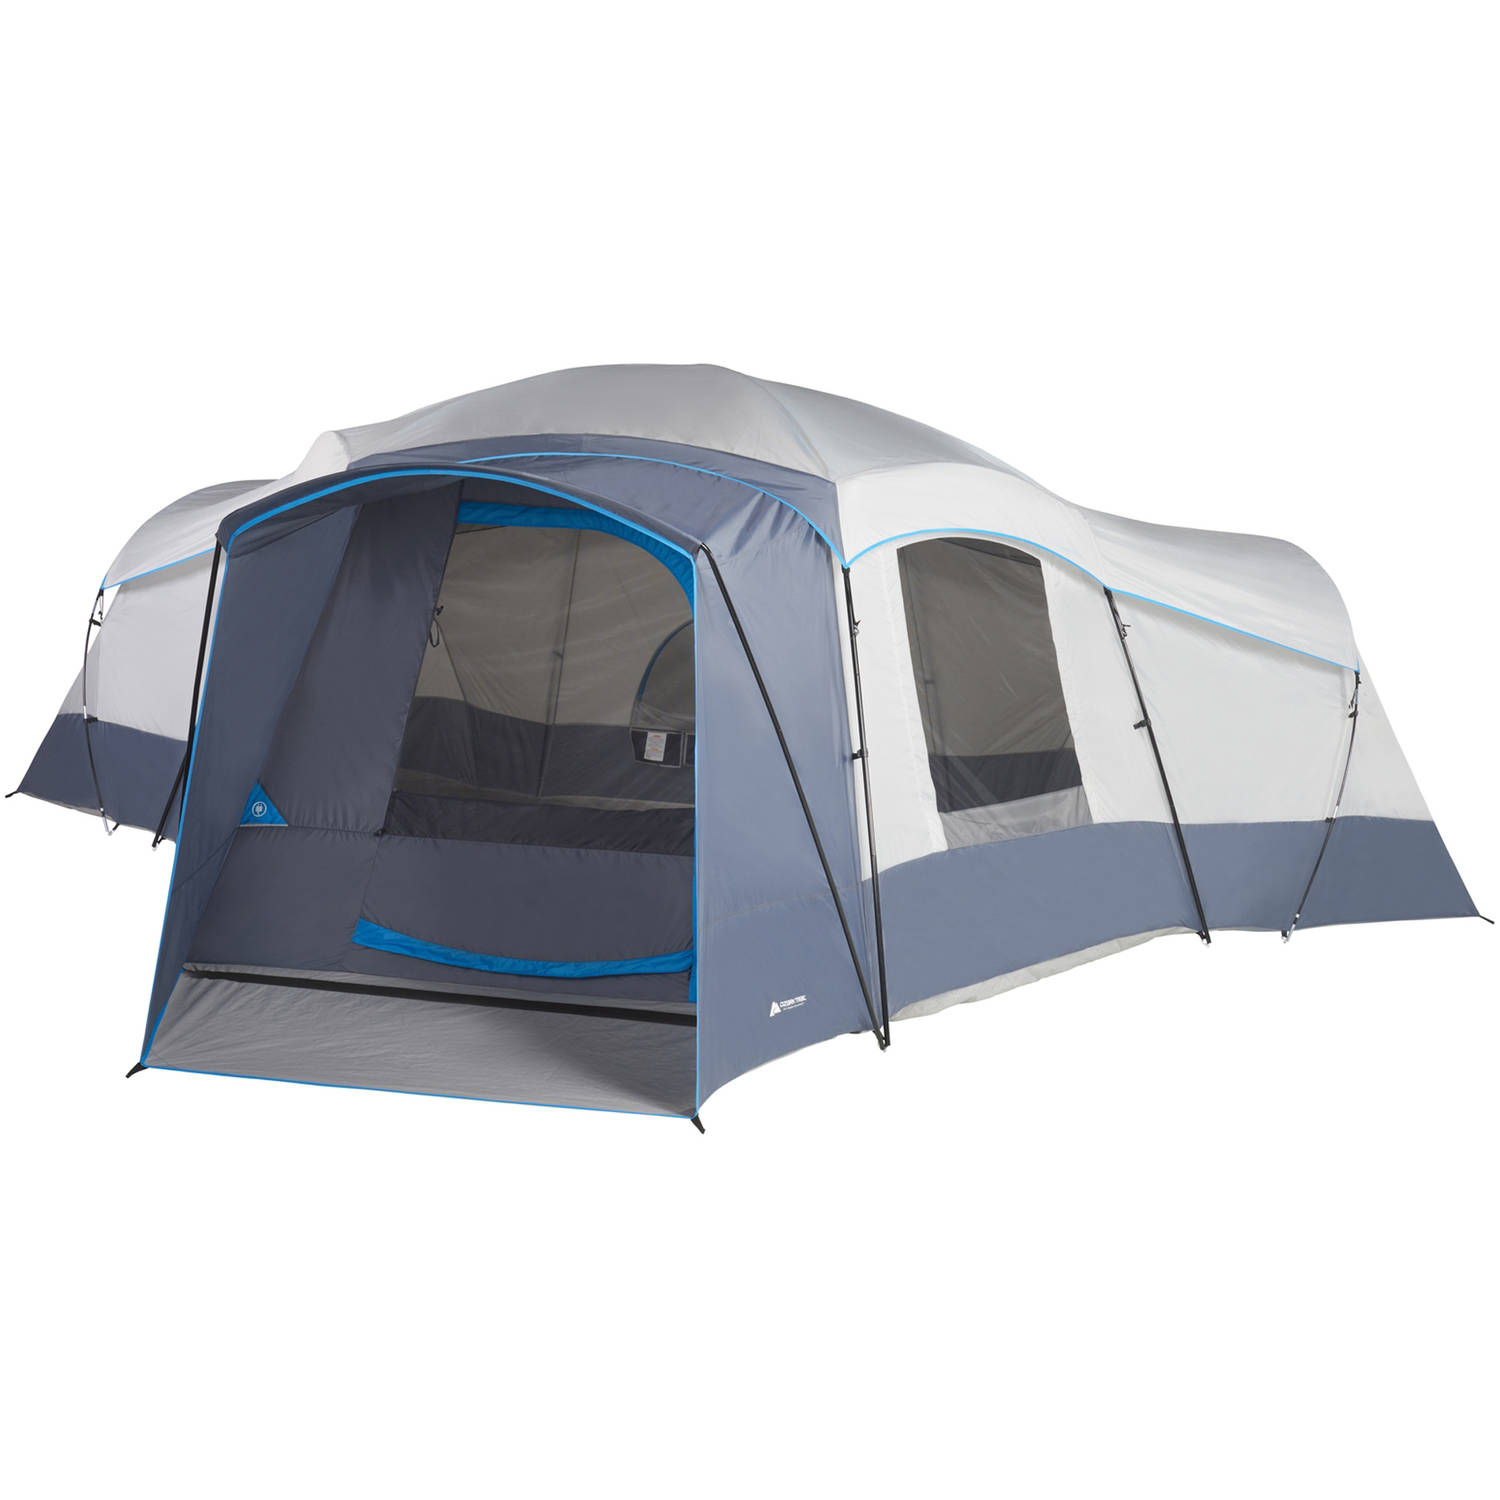 Ozark Trail 23.5' x 18.5' Cabin Tent, Sleeps 16